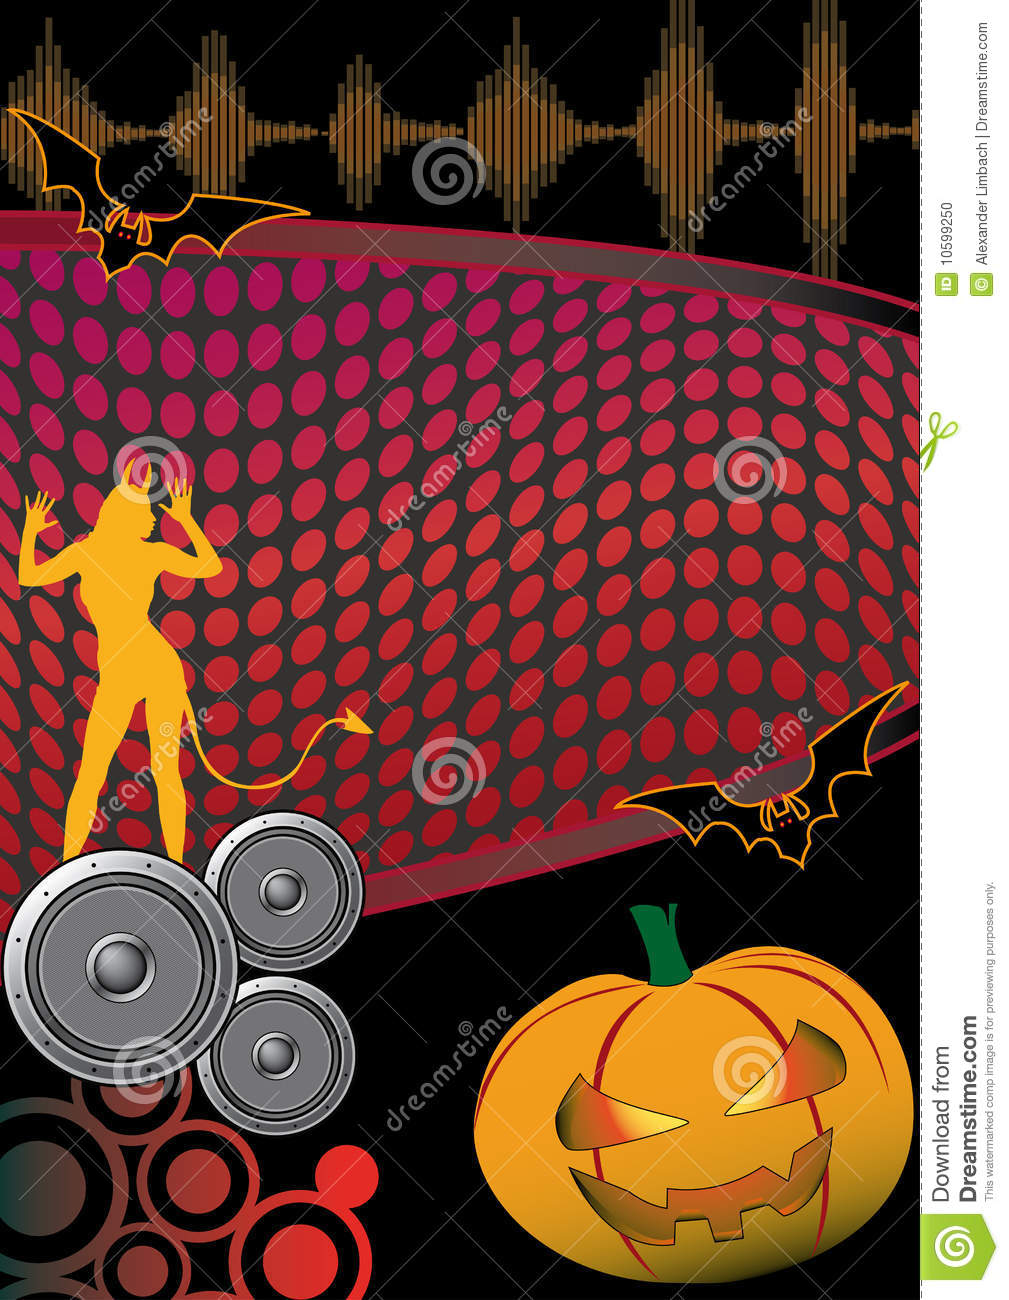 Halloween Music Disco Party Flyer Poster Stock Photo - Image: 10599250